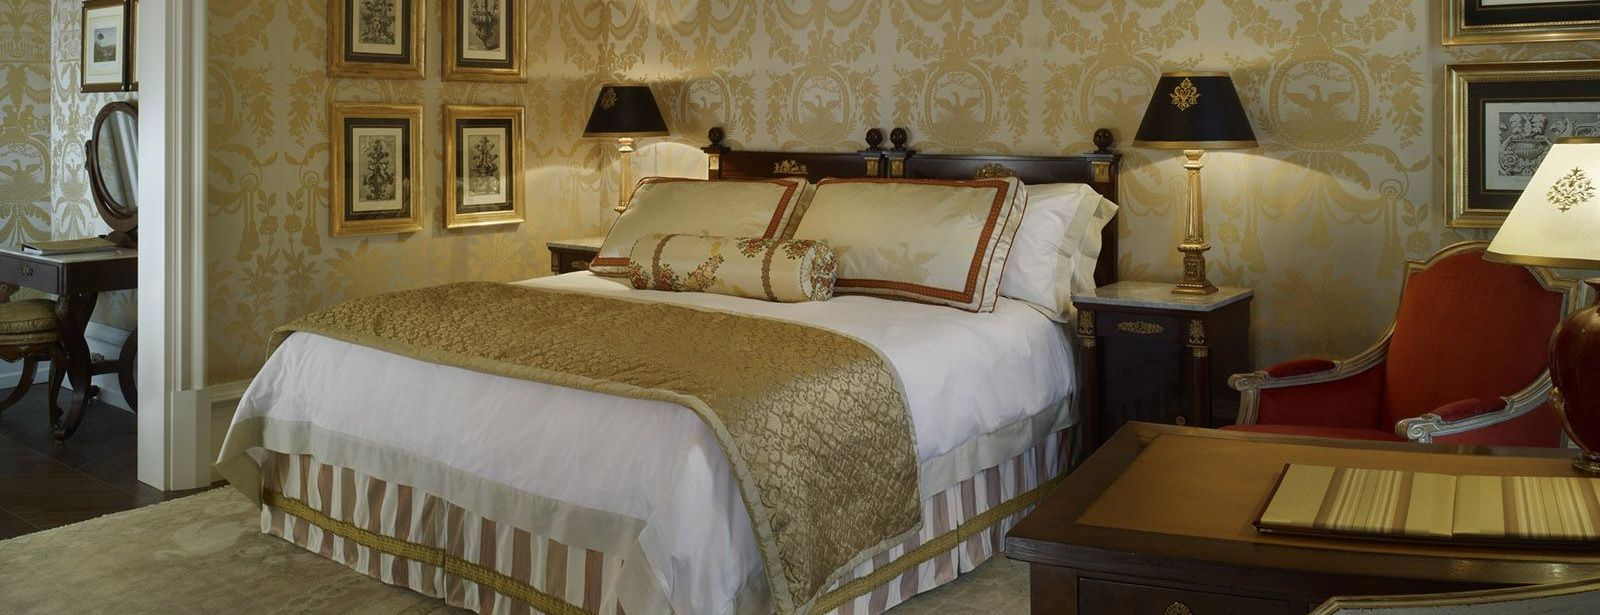 La Fenice Heritage Suite Bedroom